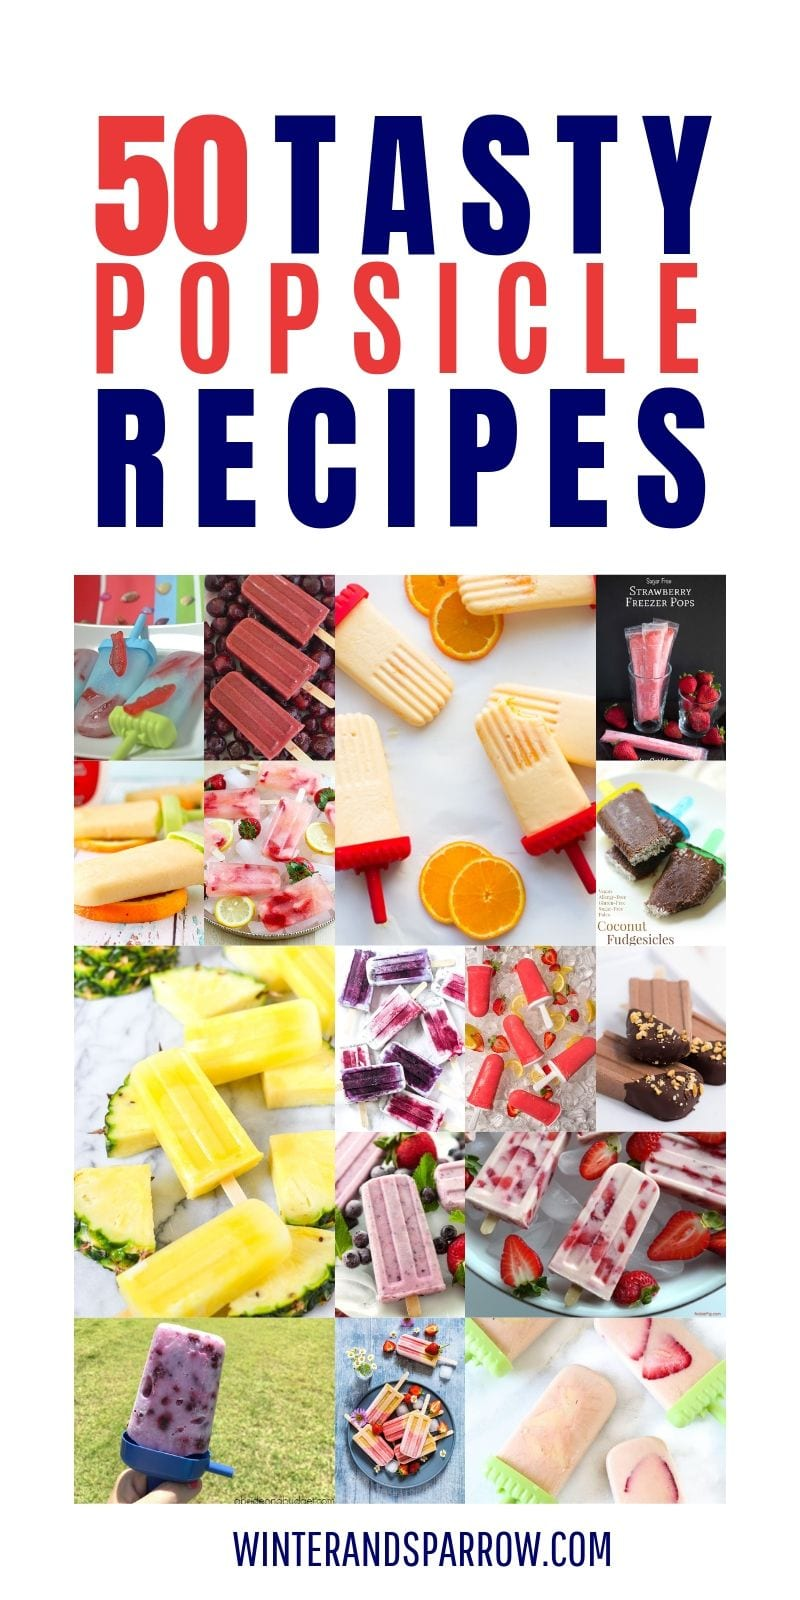 50 Tasty Popsicle Recipes {Perfect for summer!} #easypopsiclerecipes #popsiclerecipes #tastypopsicles #summerpopsicles